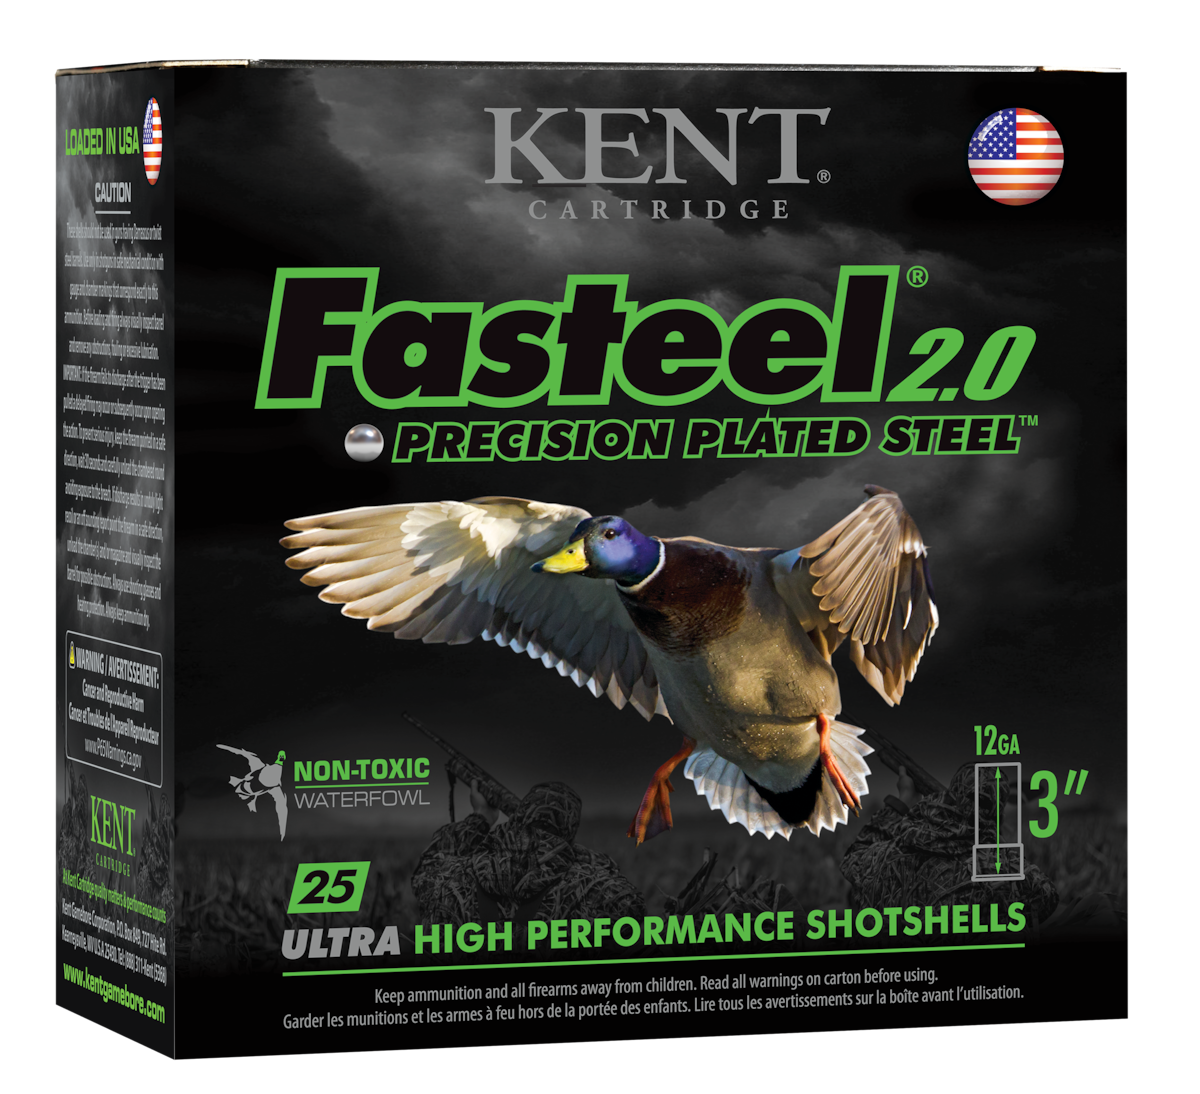 KENT CARTRIDGE FASTEEL